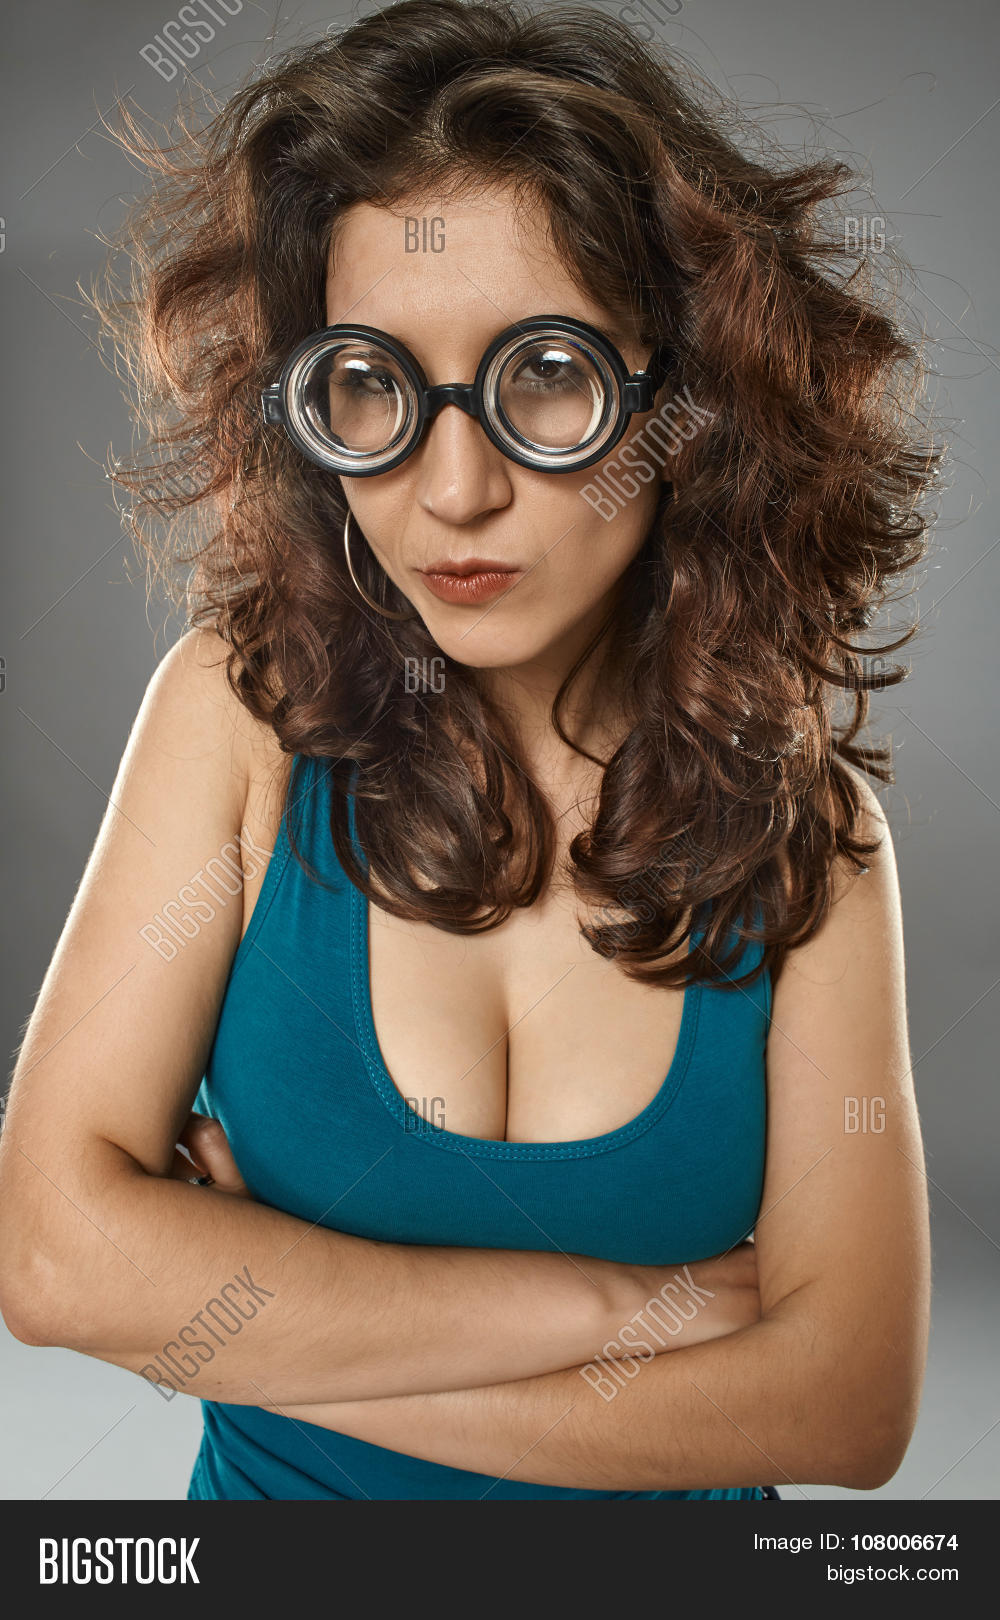 Final, sexy girl with nerd glasses something is